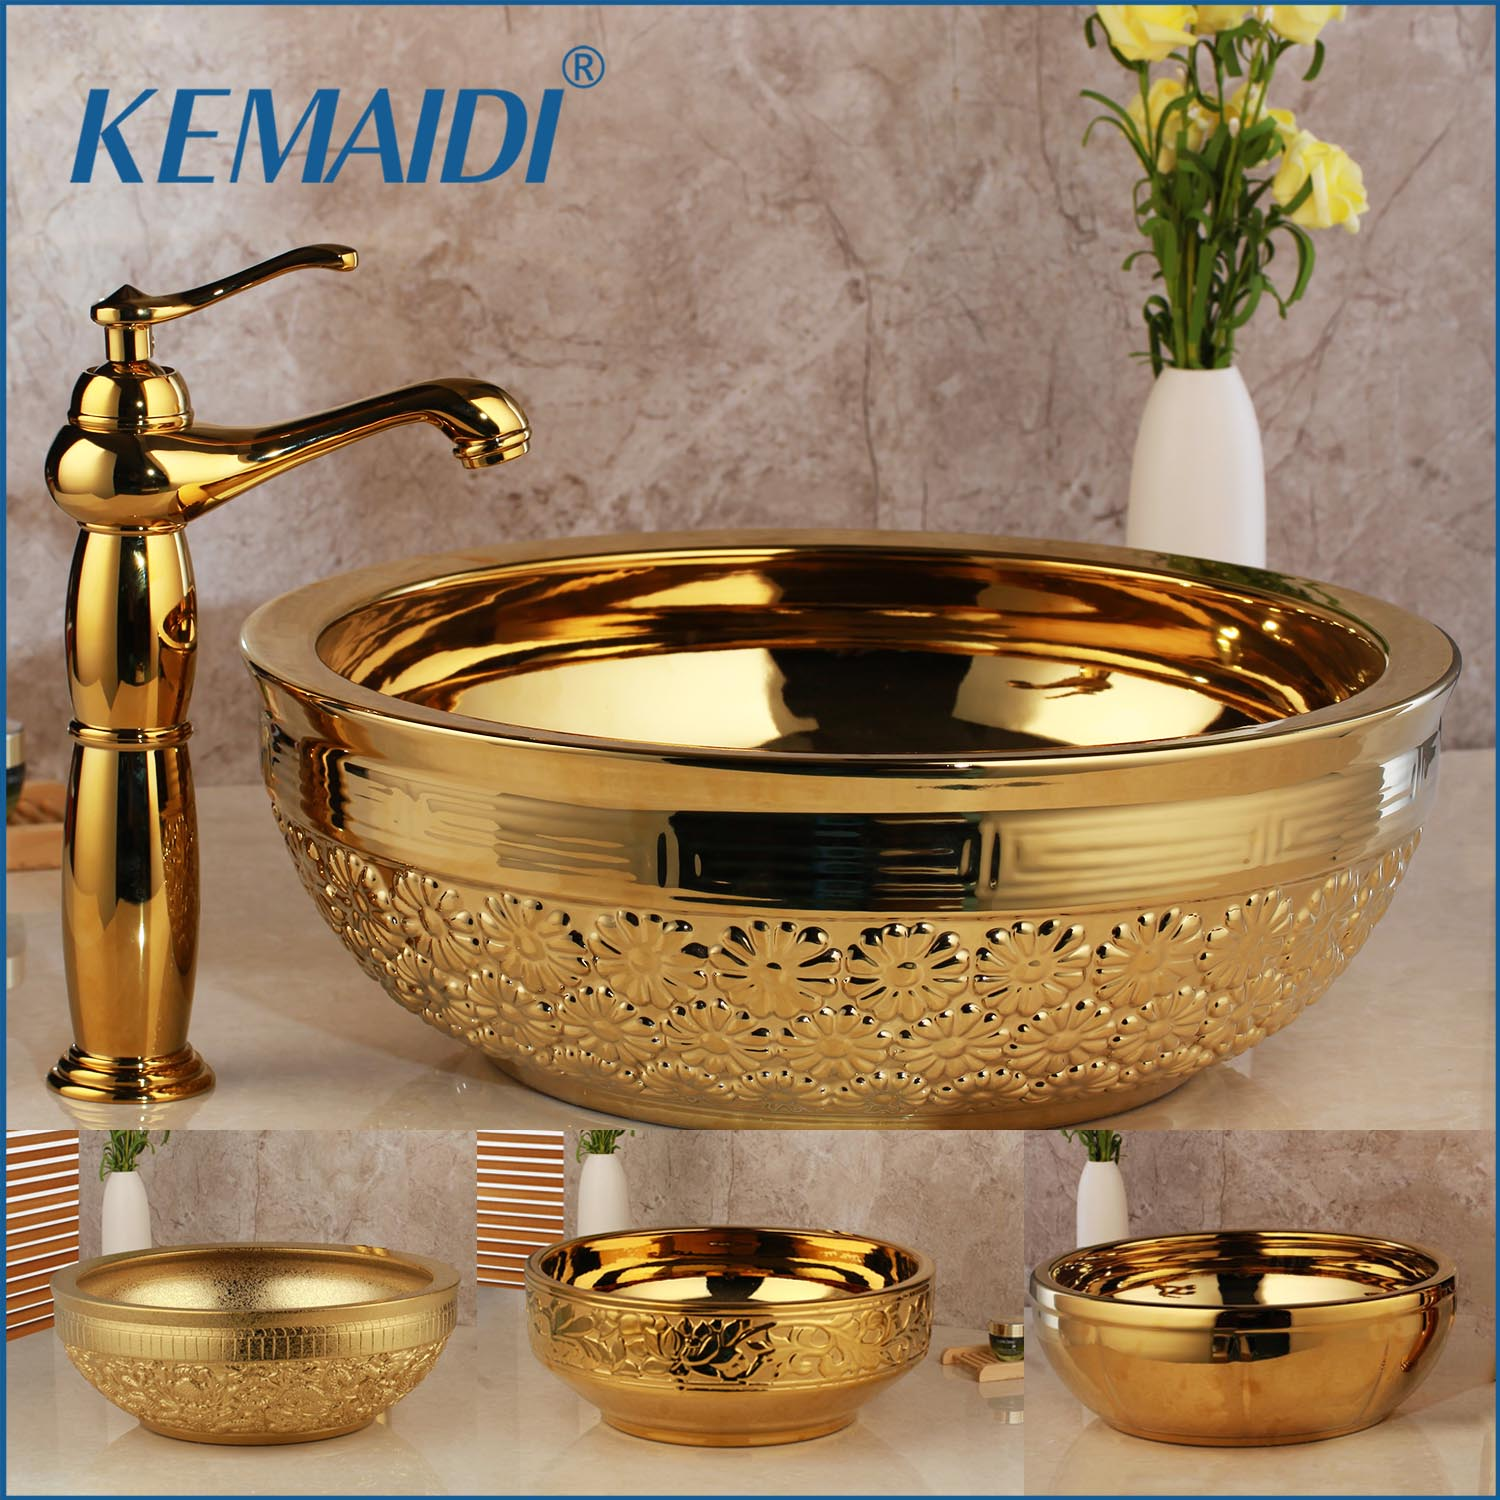 Kemaidi Solid Brass Basin Faucets Sets Golden Luxury